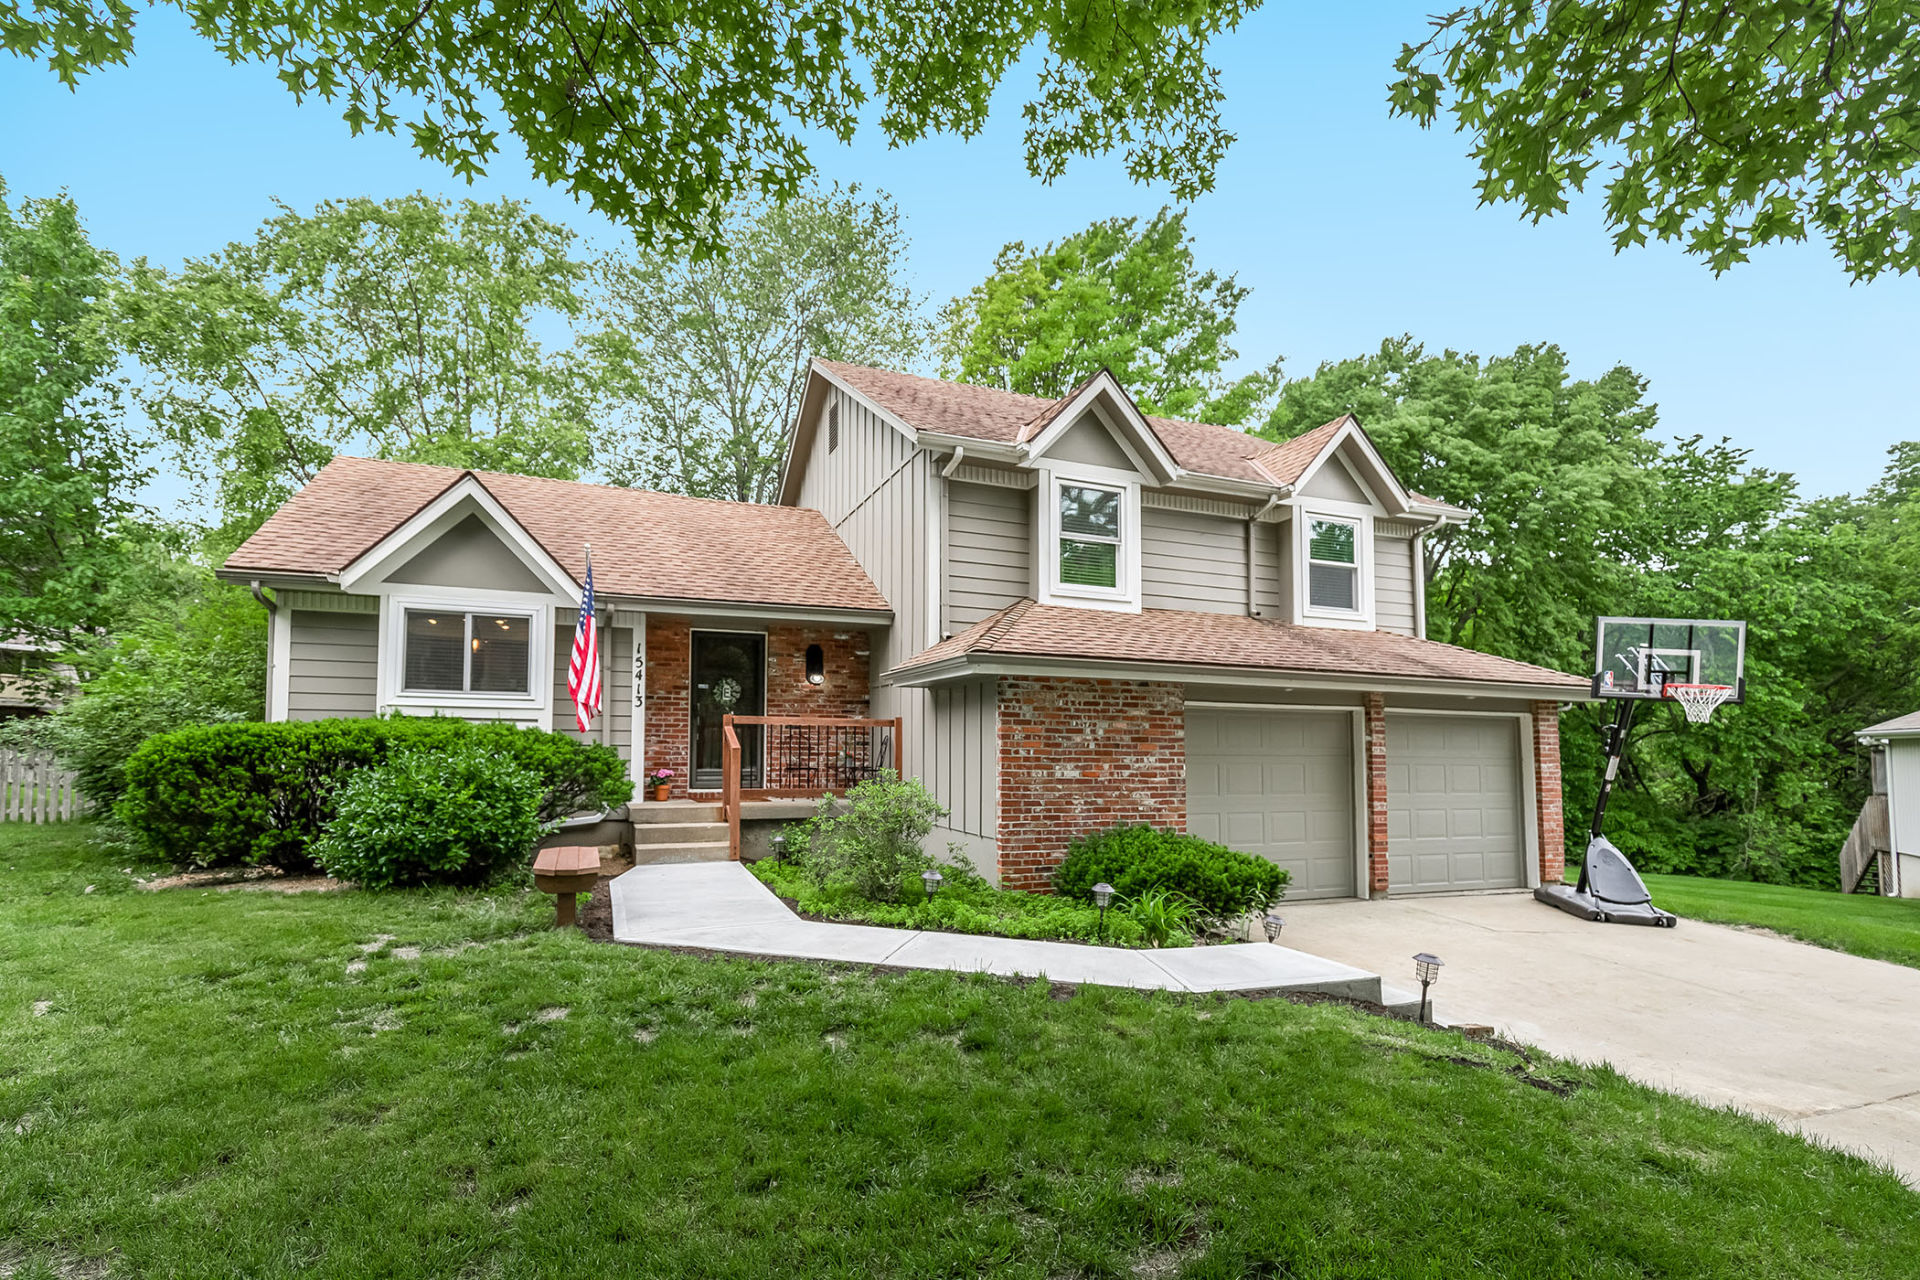 JUST LISTED in LENEXA with First OPEN HOUSE Sun 6/9!